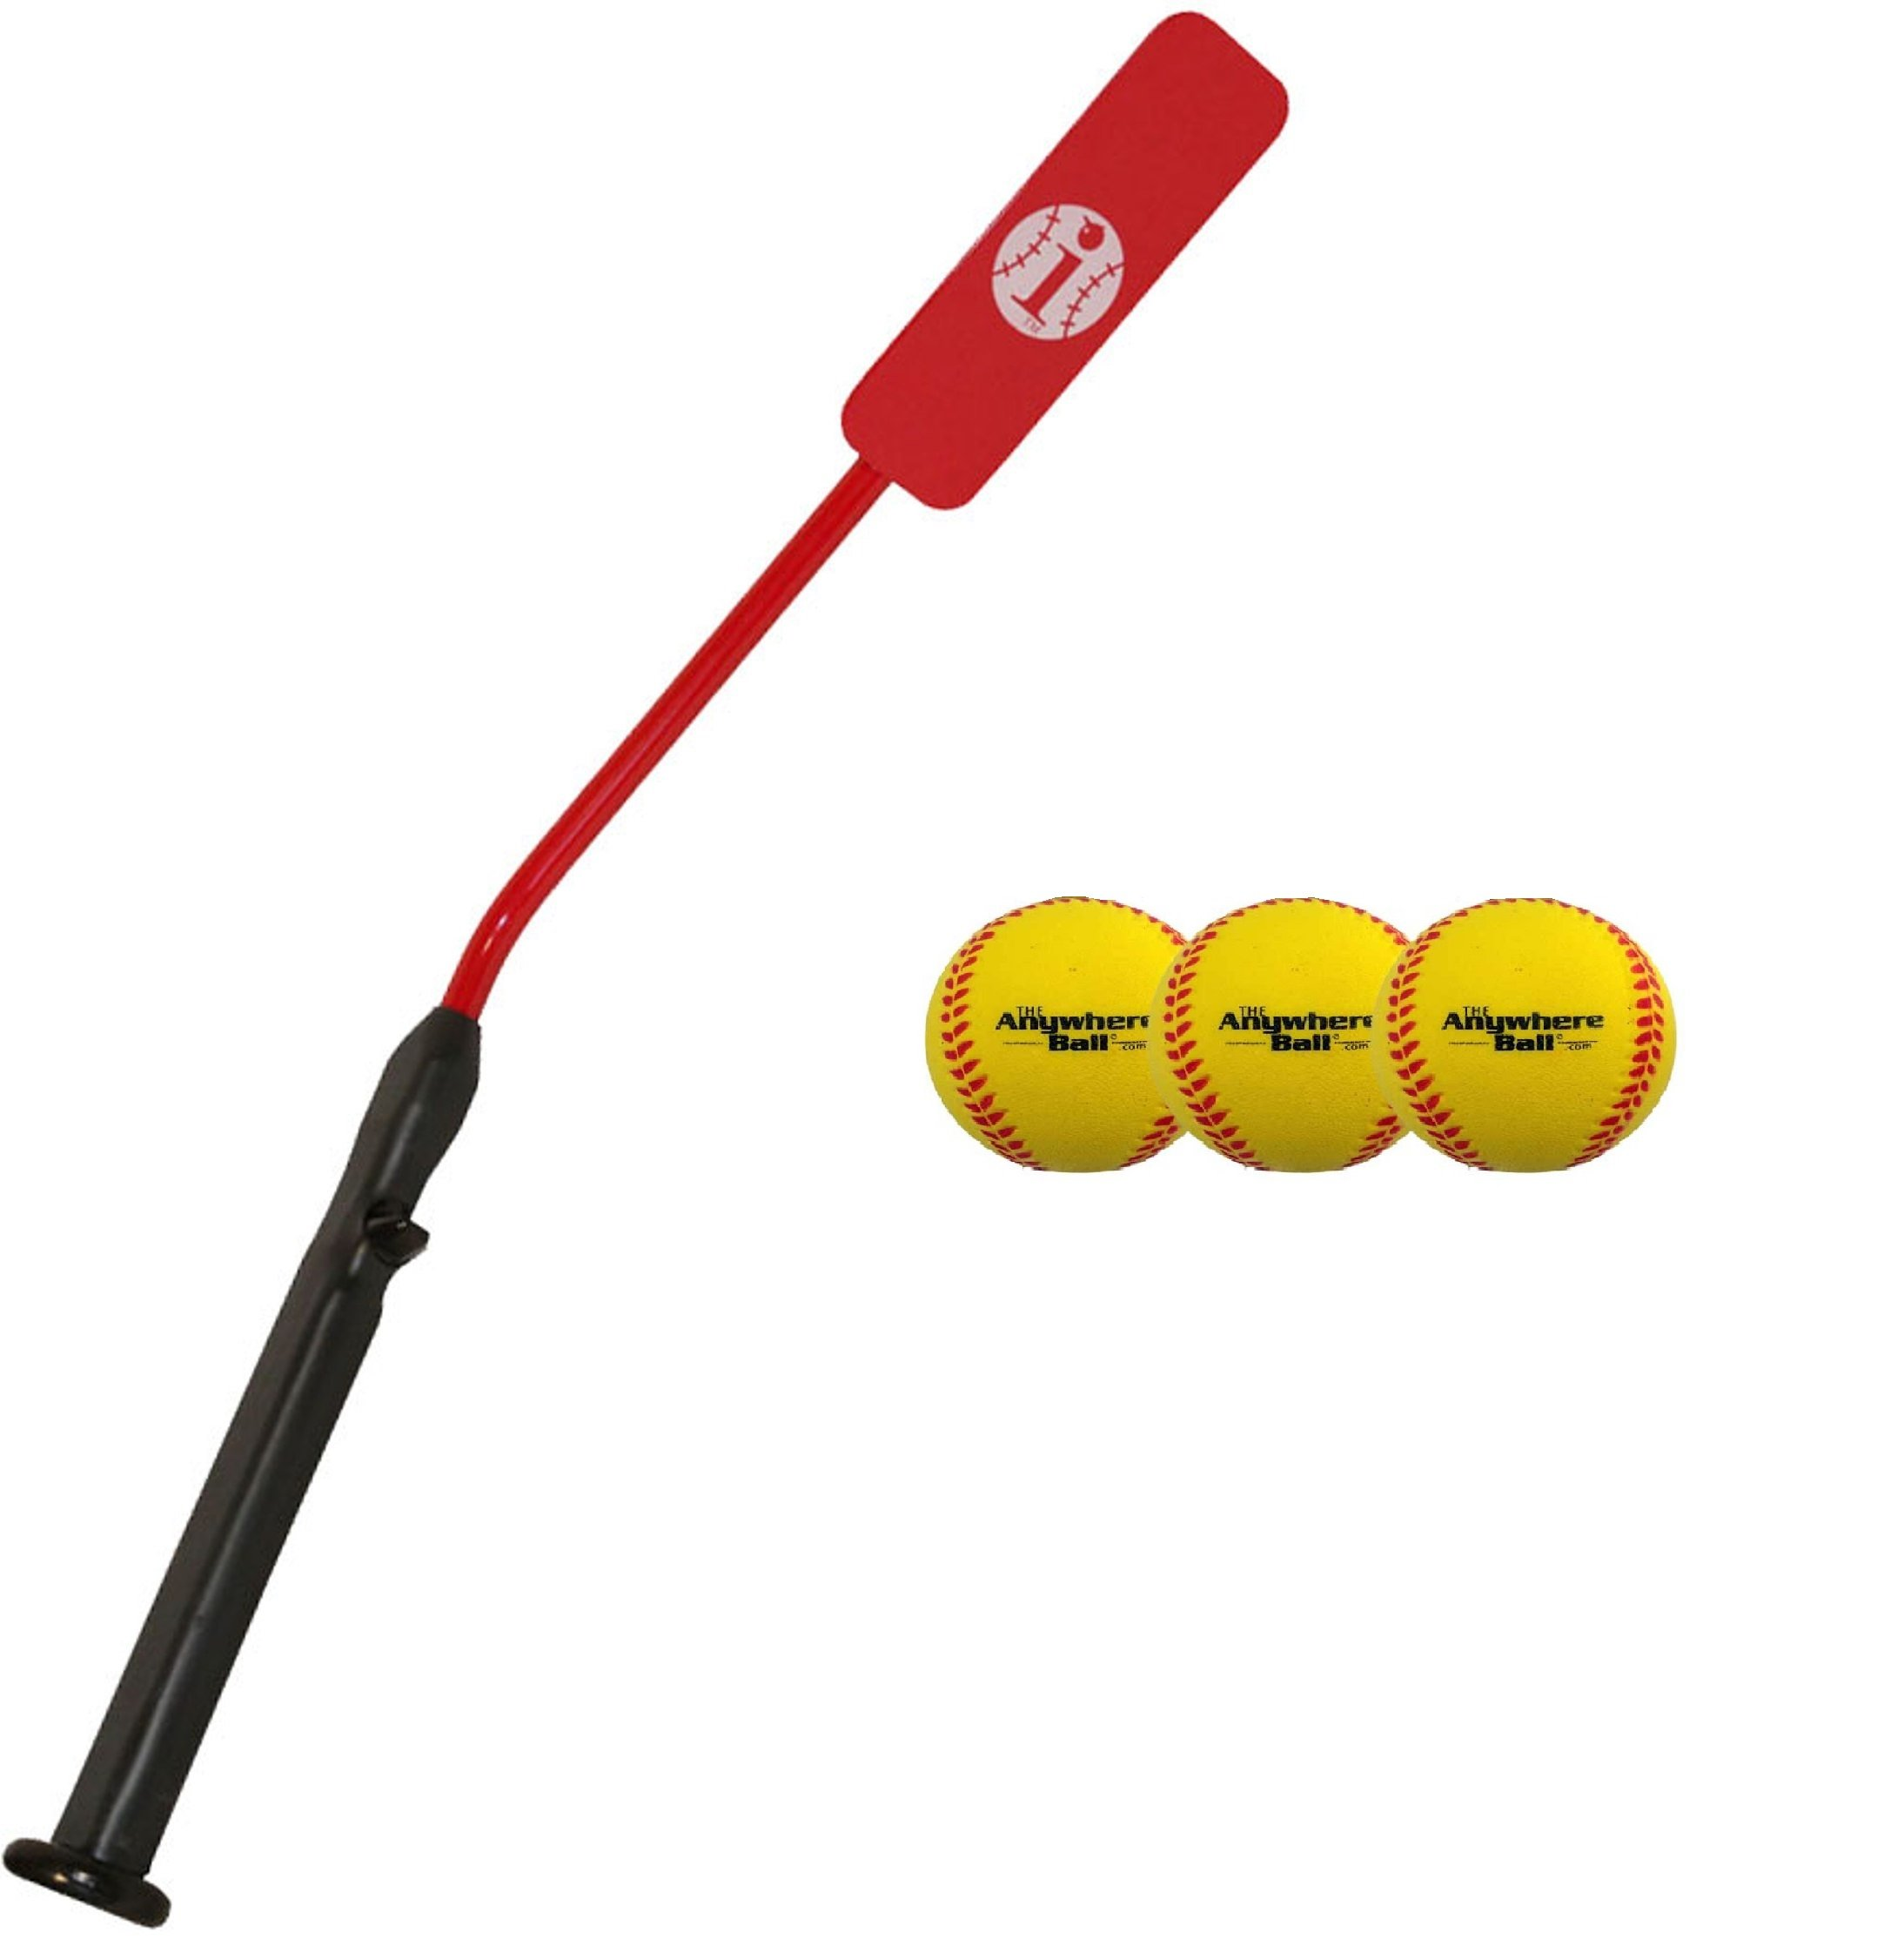 Insider Bat Size 7 and Anywhere Ball Complete Baseball Softball Batting Practice Kit (1 Bat & 3 Balls) by Mpo